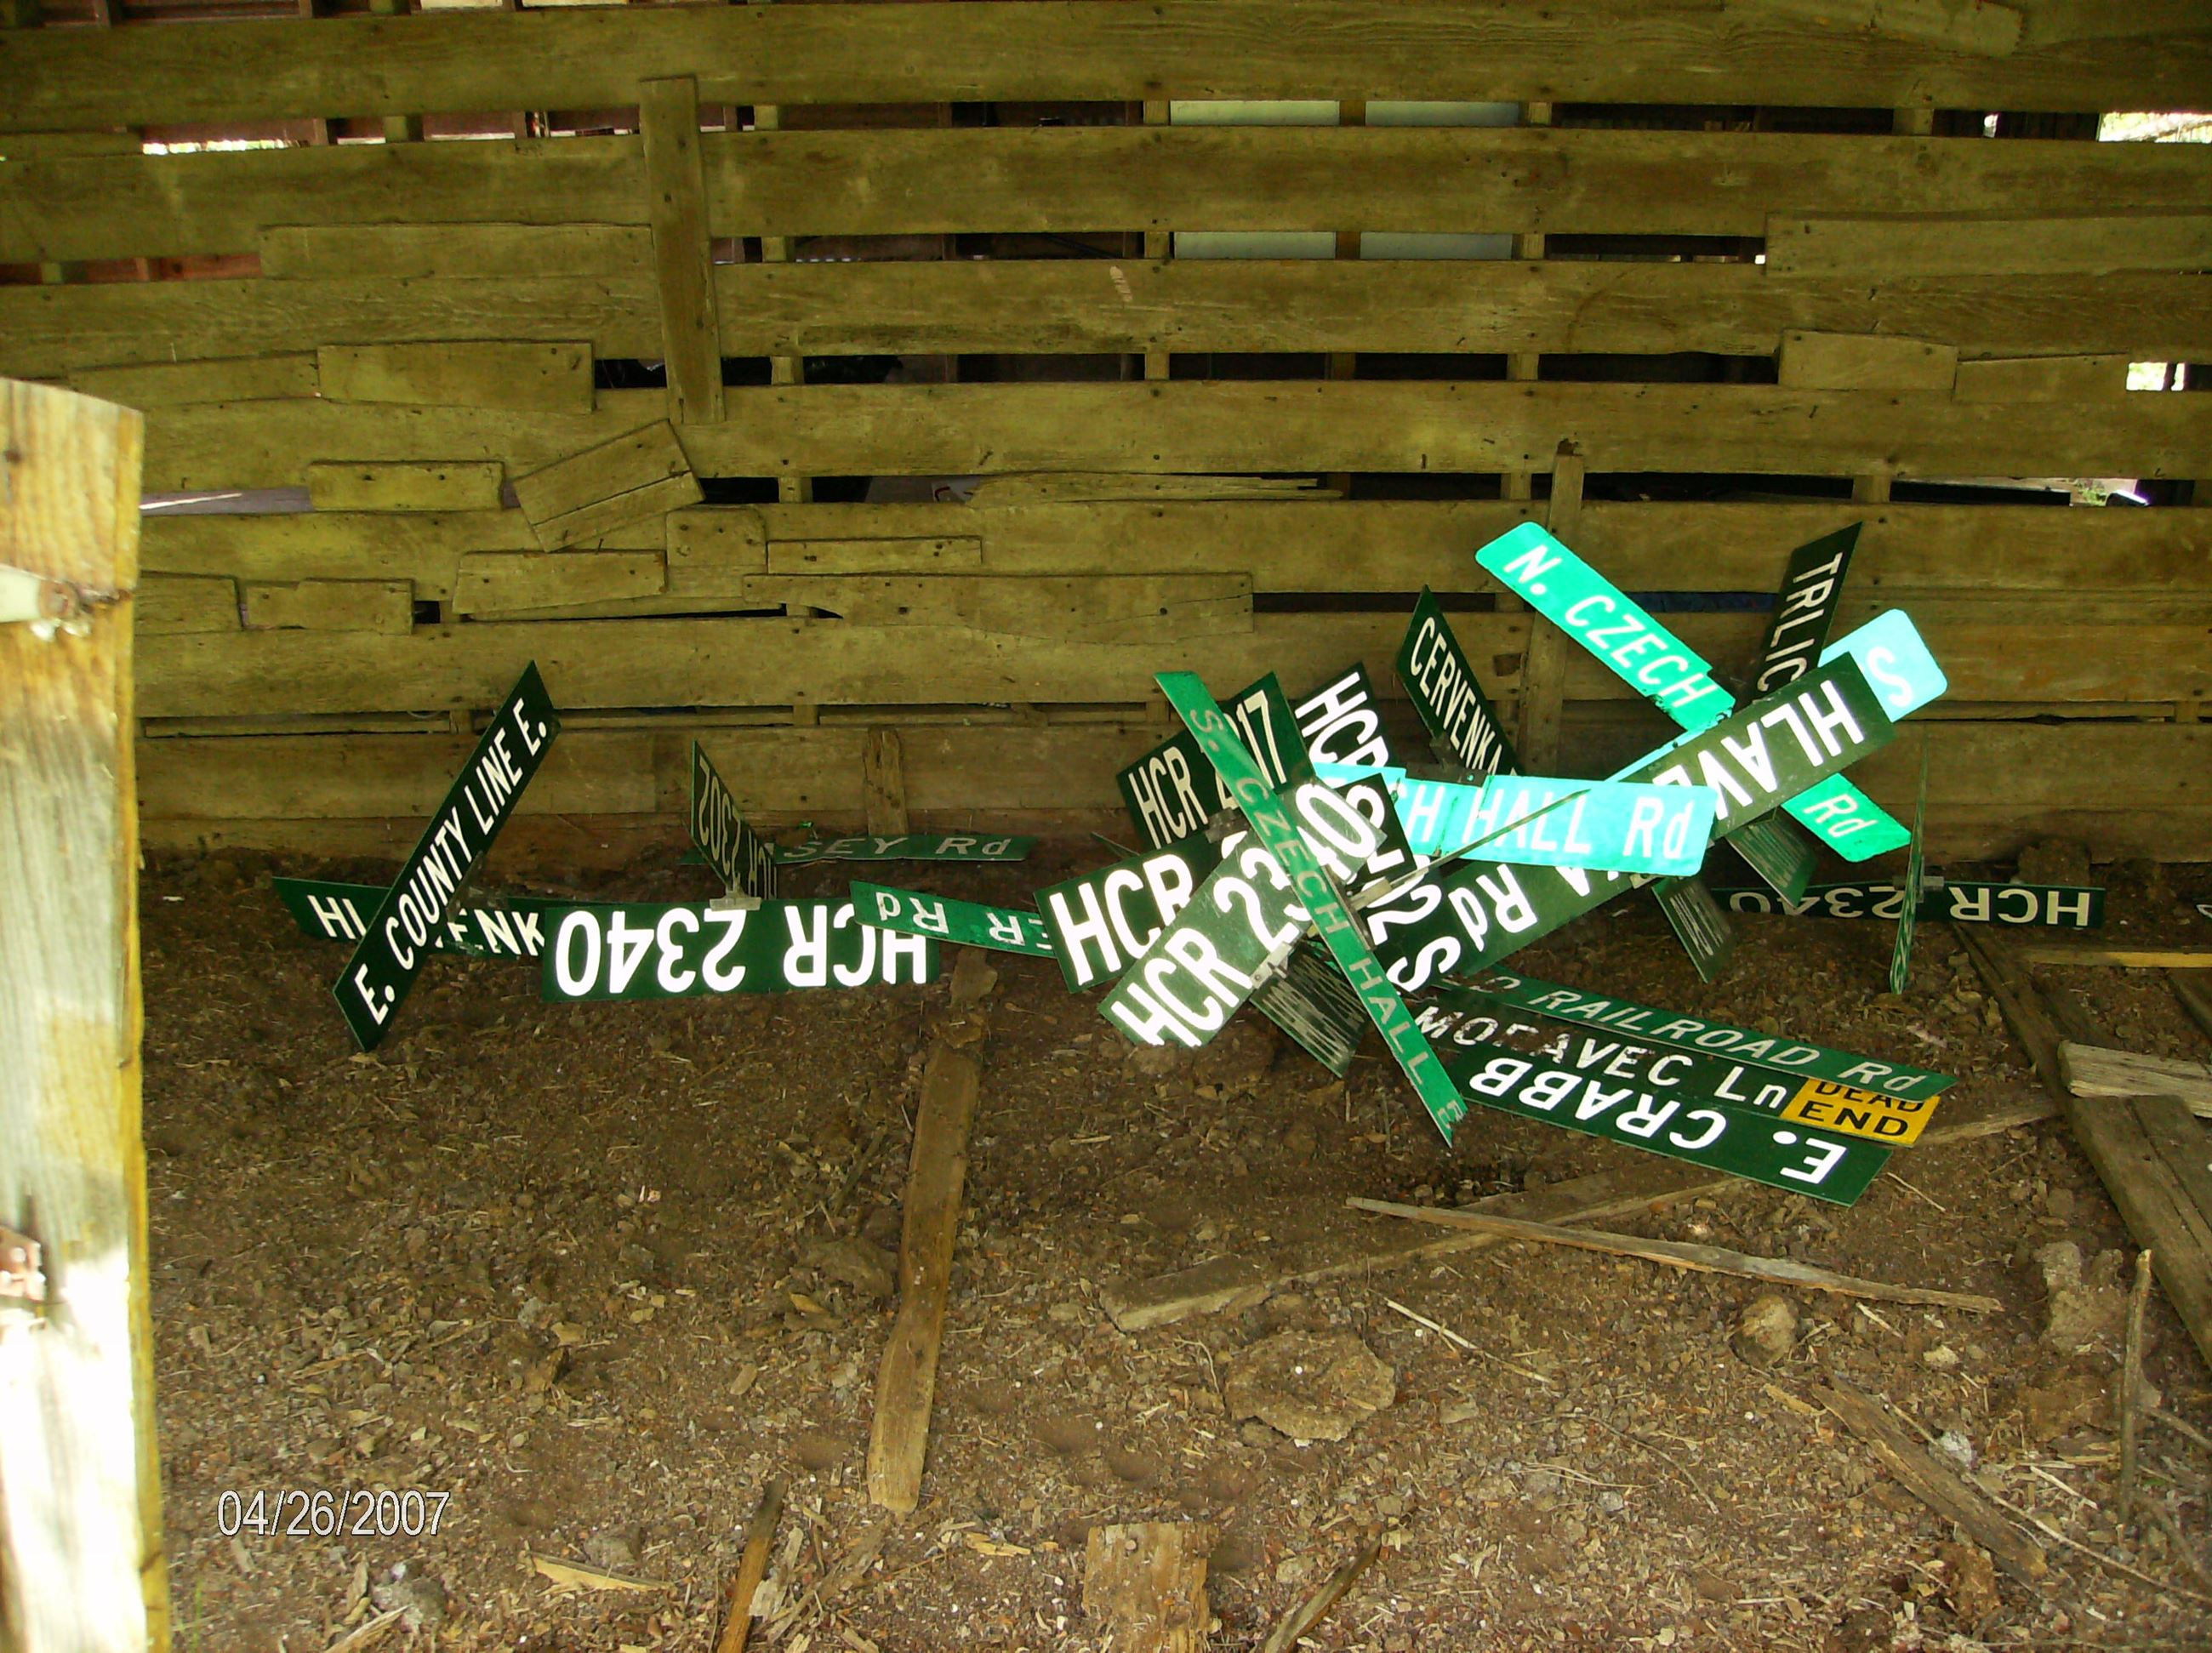 Image Of Stolen Street Sign Stash In Abandoned Building